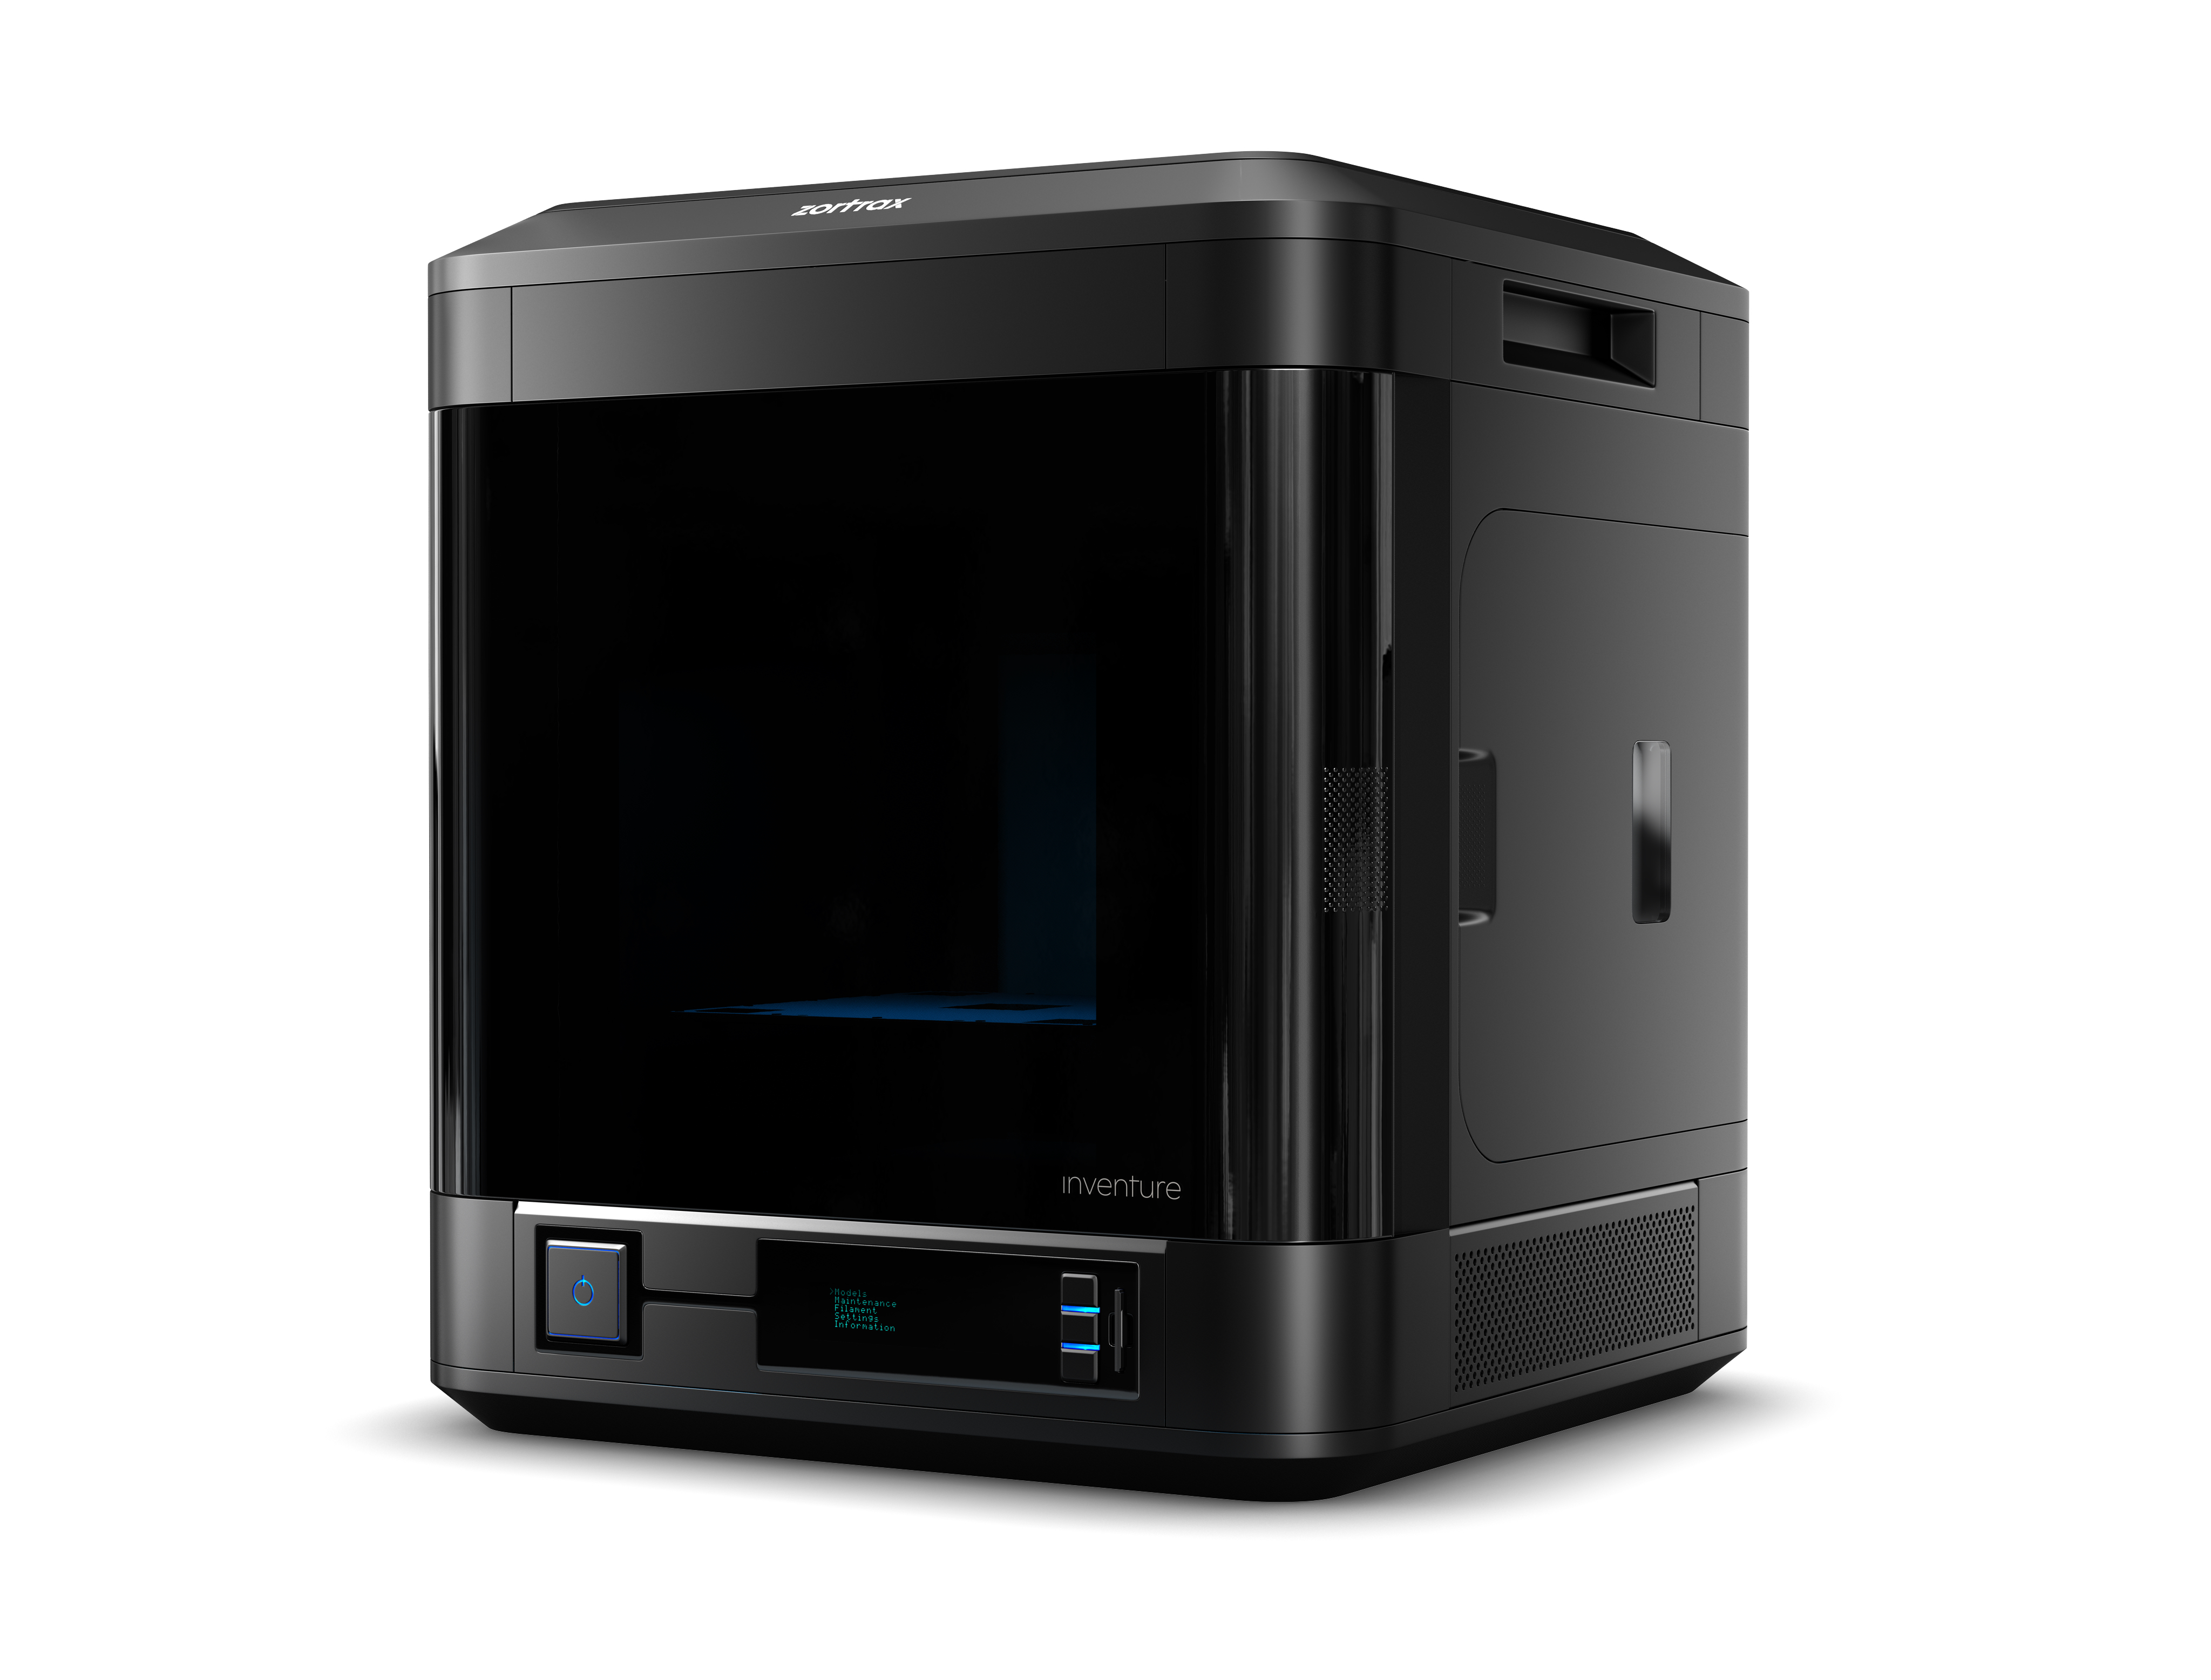 Zortrax Releases Inventure – a Compact 3D Printer for Professionals